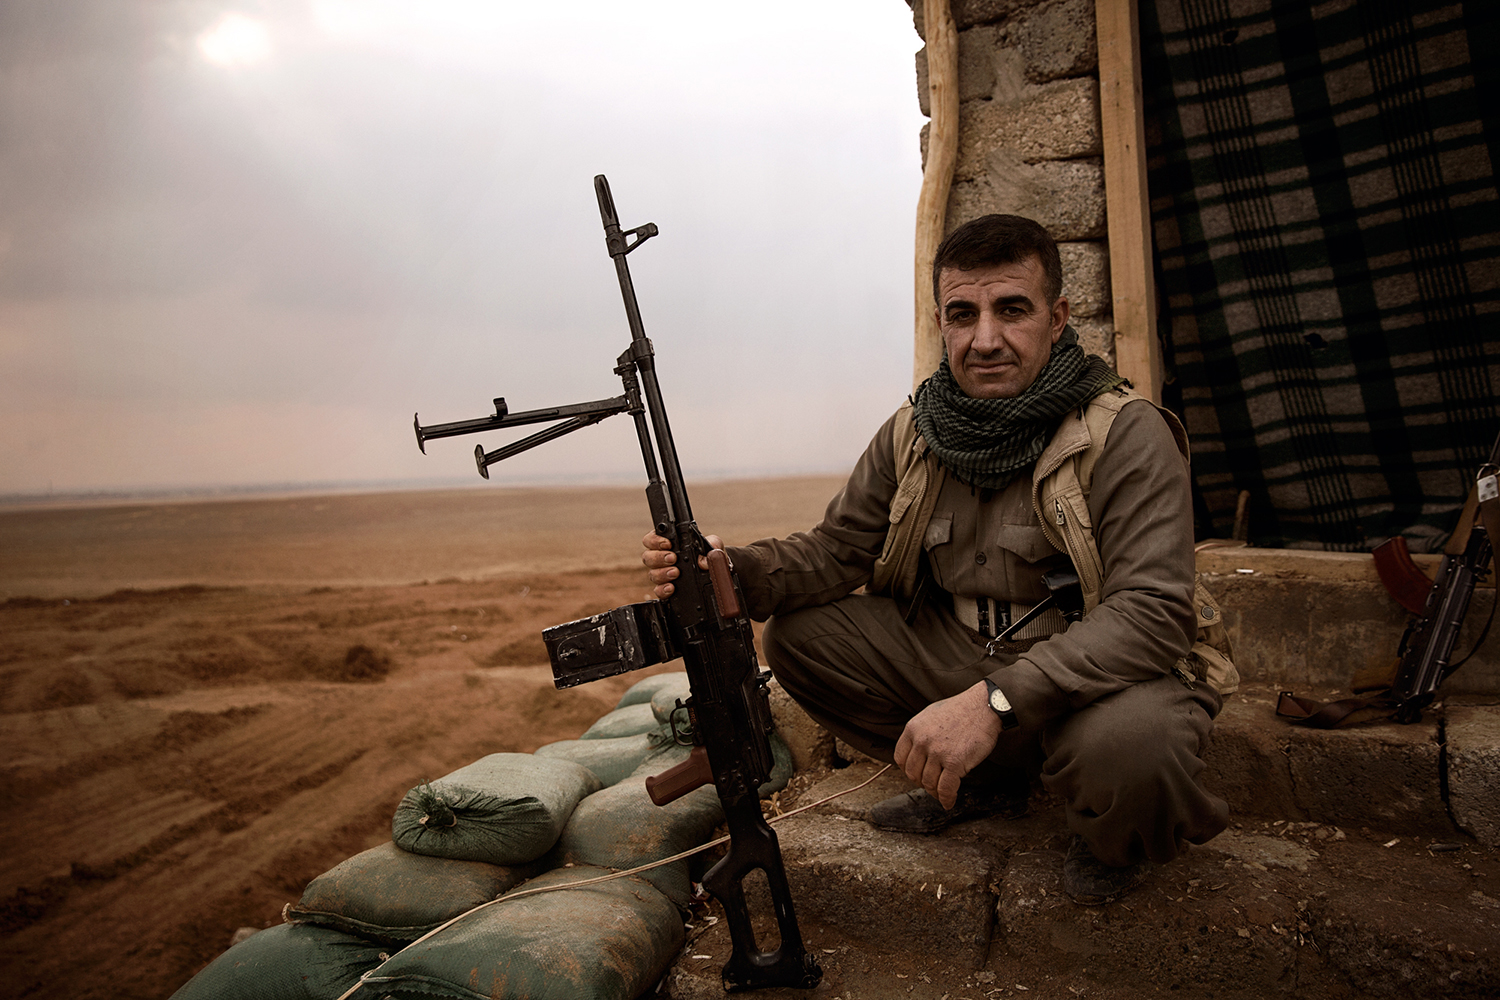 A kurdish Peshmerga fighter with his weapon in front of the Iraqi border